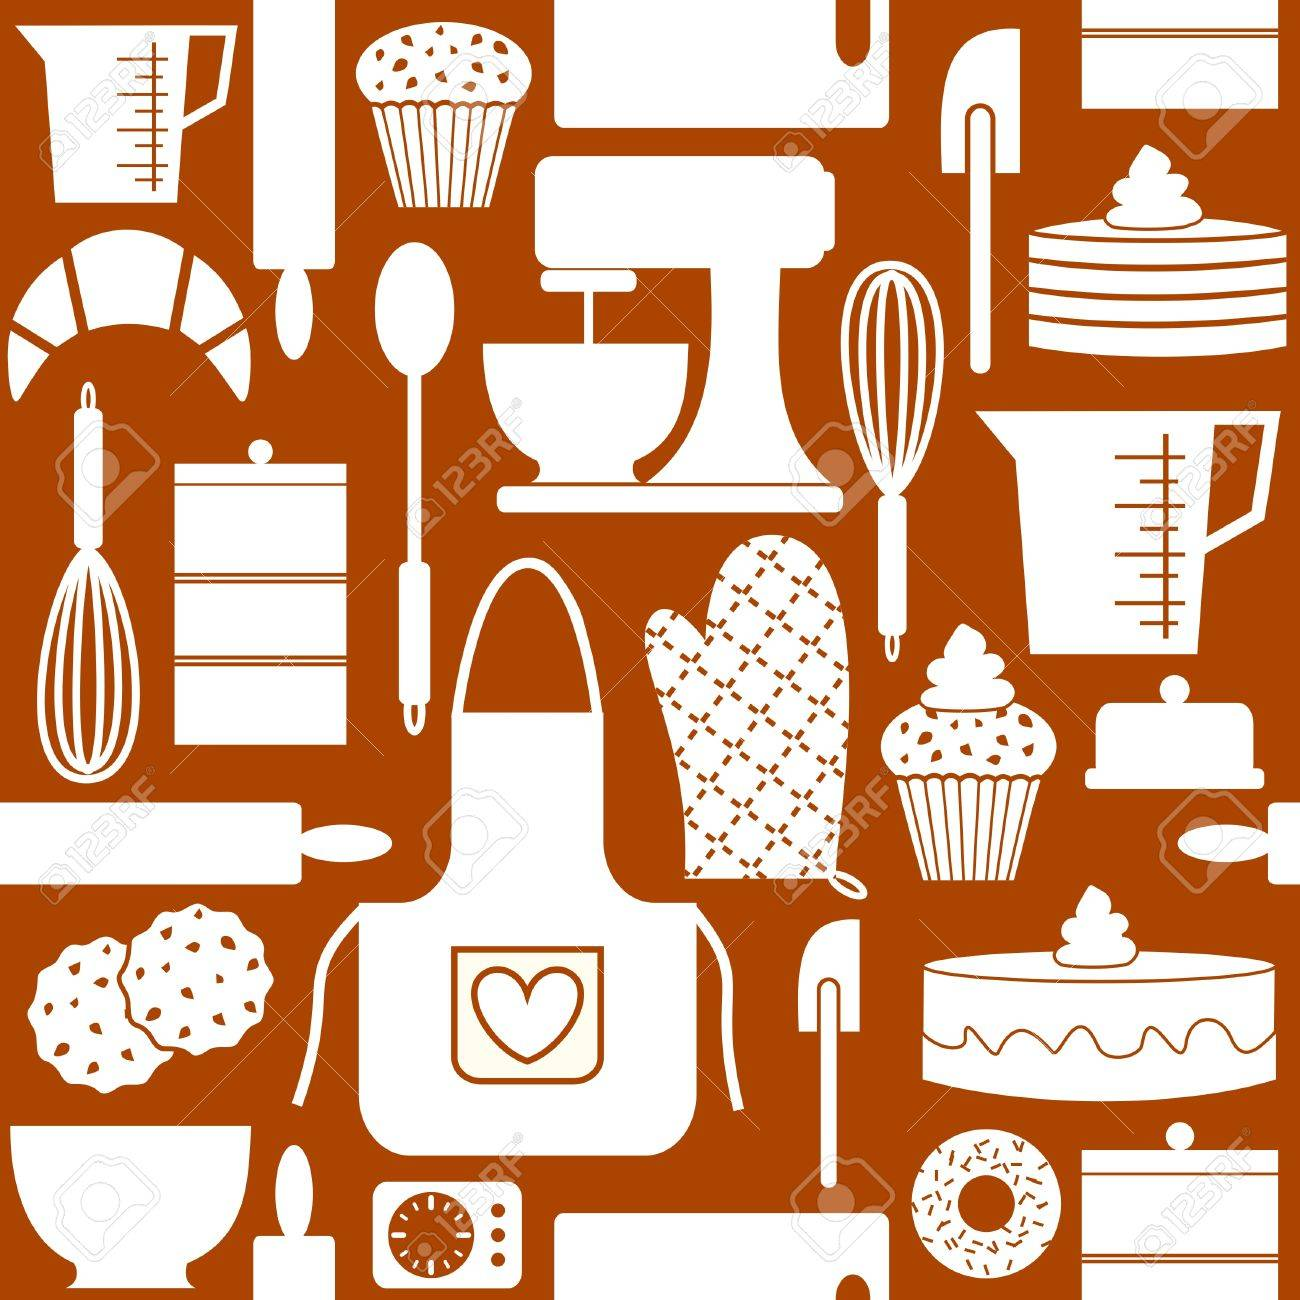 Seamless pattern in retro style with kitchen and baking items  n Stock Vector - 13172845